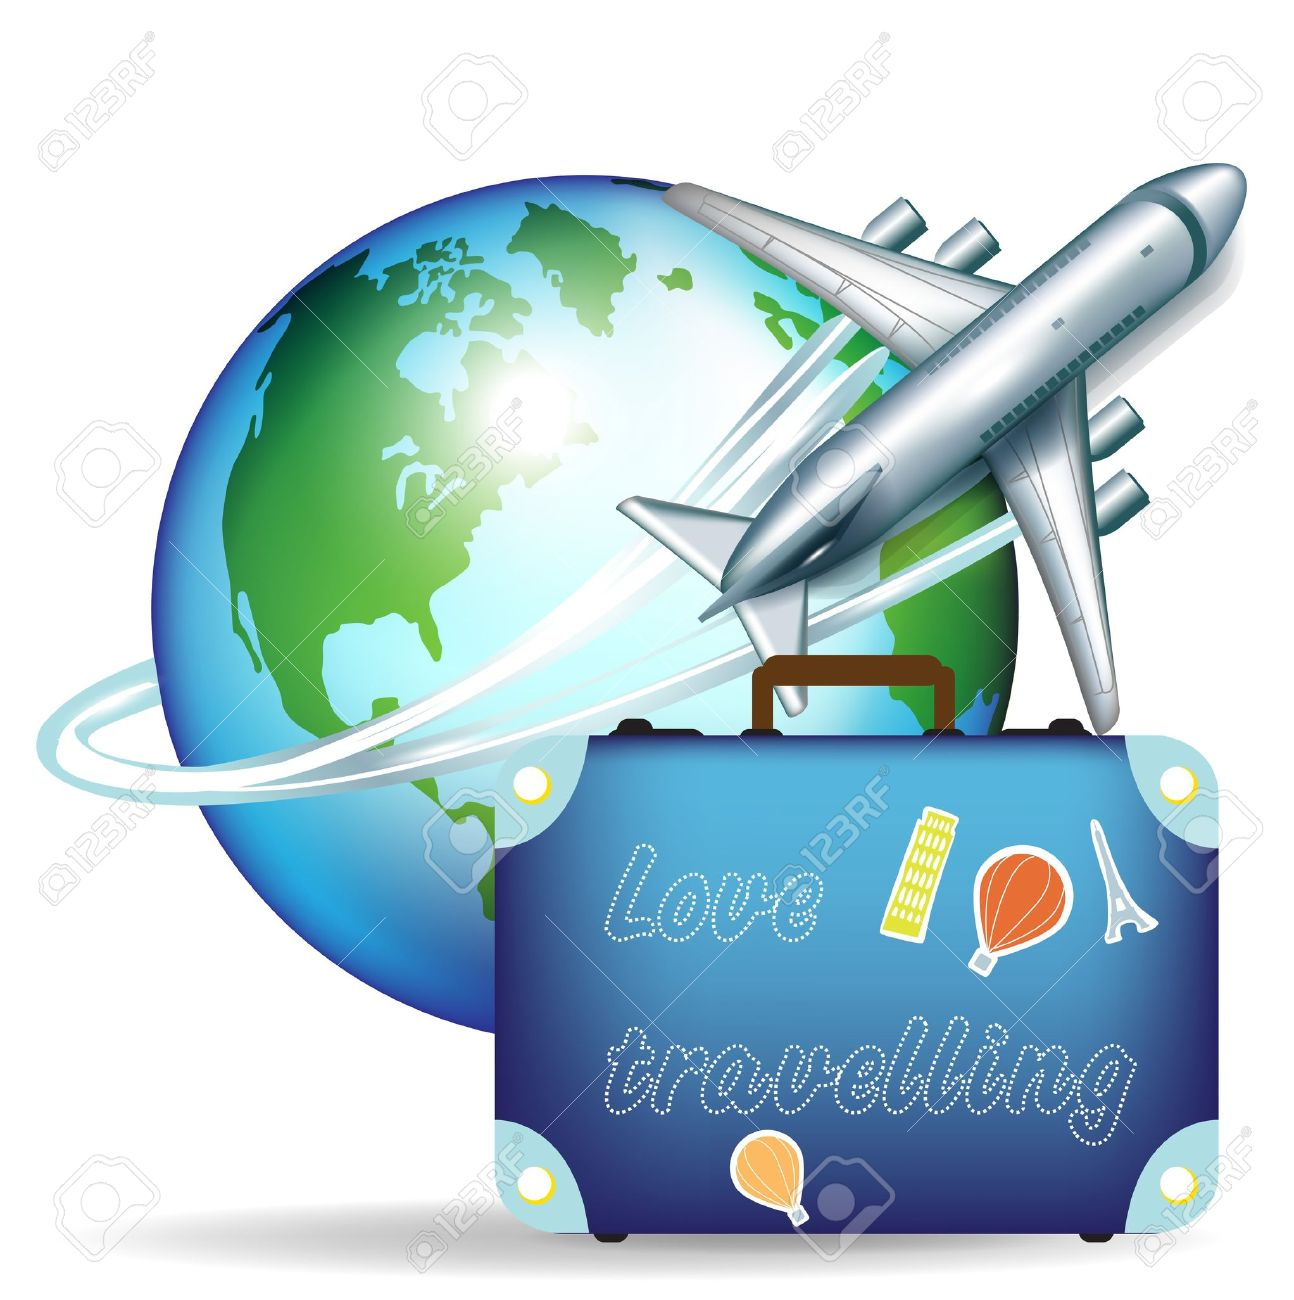 Airplane globle clipart image freeuse Airplane Travel Clipart | Free download best Airplane Travel Clipart ... image freeuse